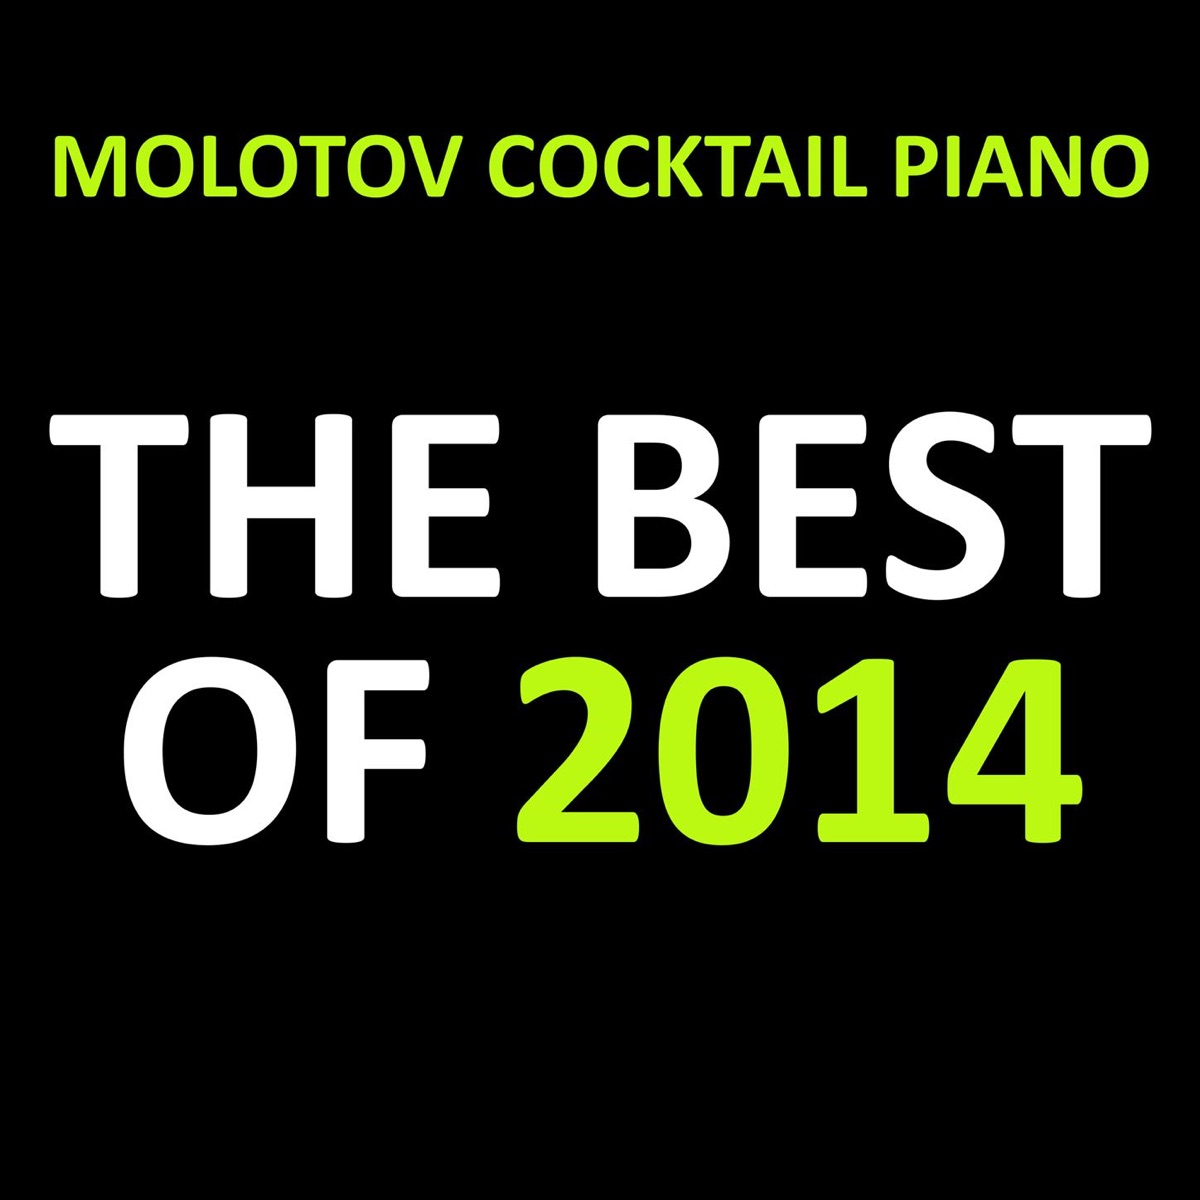 The Best Of 2014 Molotov Cocktail Piano CD cover